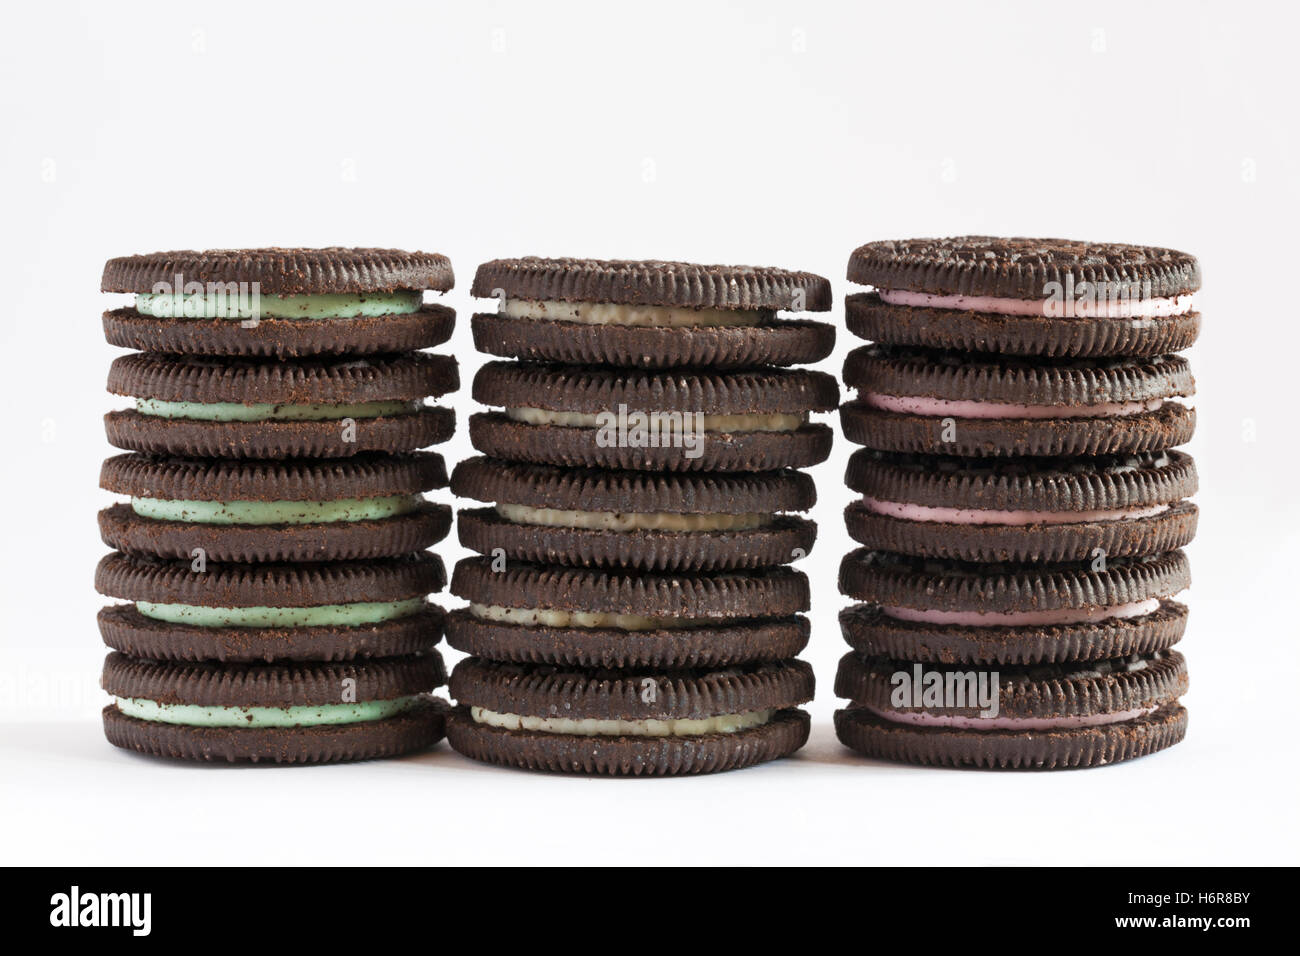 Stack of Mint flavour, Original flavour and Strawberry Cheesecake flavour Oreo biscuits isolated on white background - Stock Image